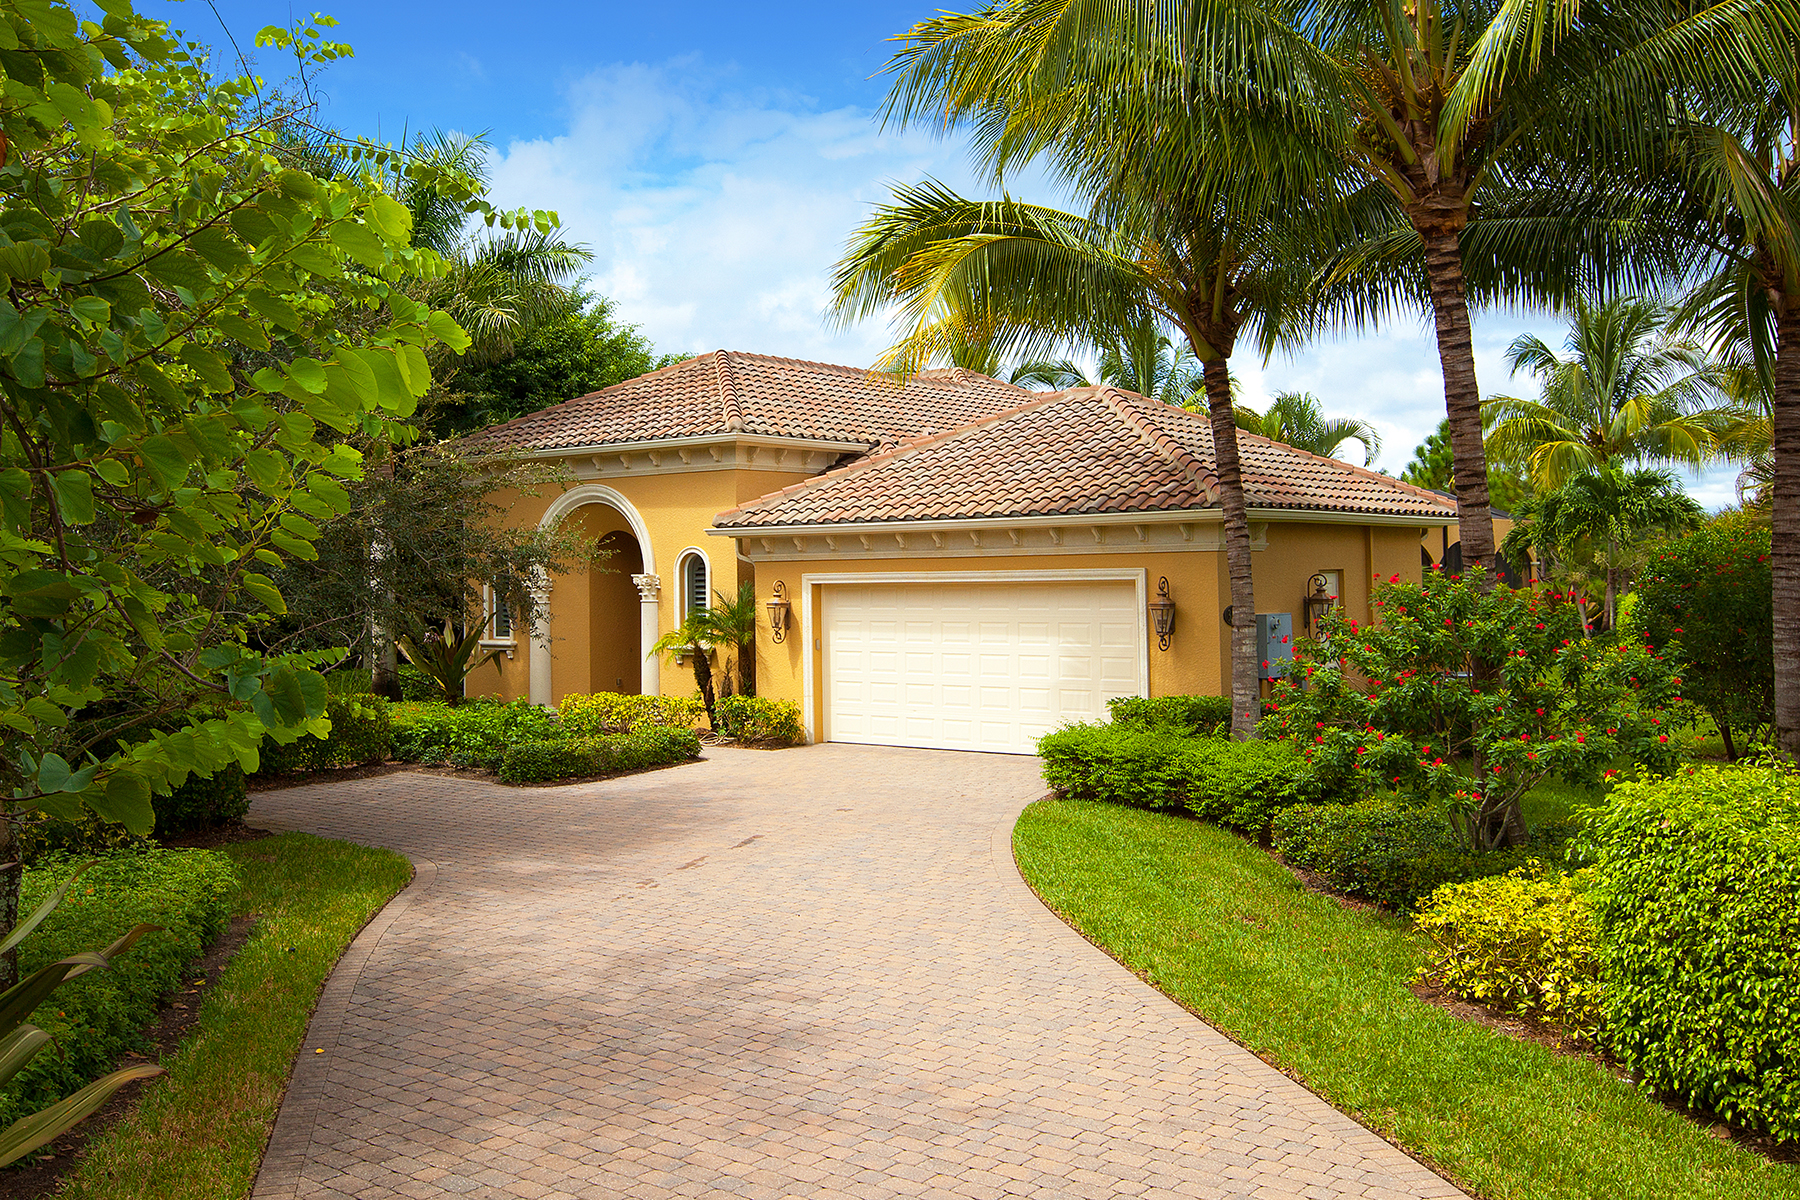 Single Family Home for Sale at FIDDLERS' CREEK - SAUVIGNON 3299 Hyacinth Dr Naples, Florida 34114 United States